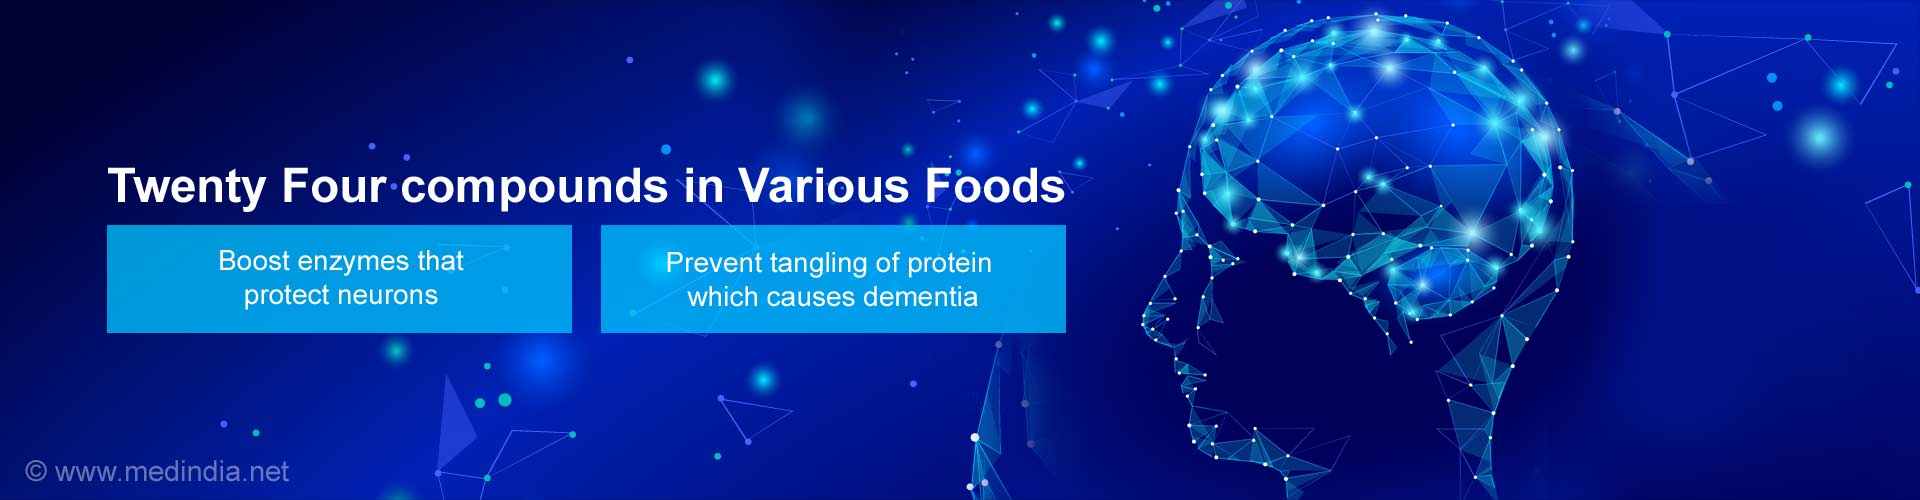 Twenty Four compounds in various foods - Boost enzymes that protect neurons - Prevent tangling of protein which causes dementia